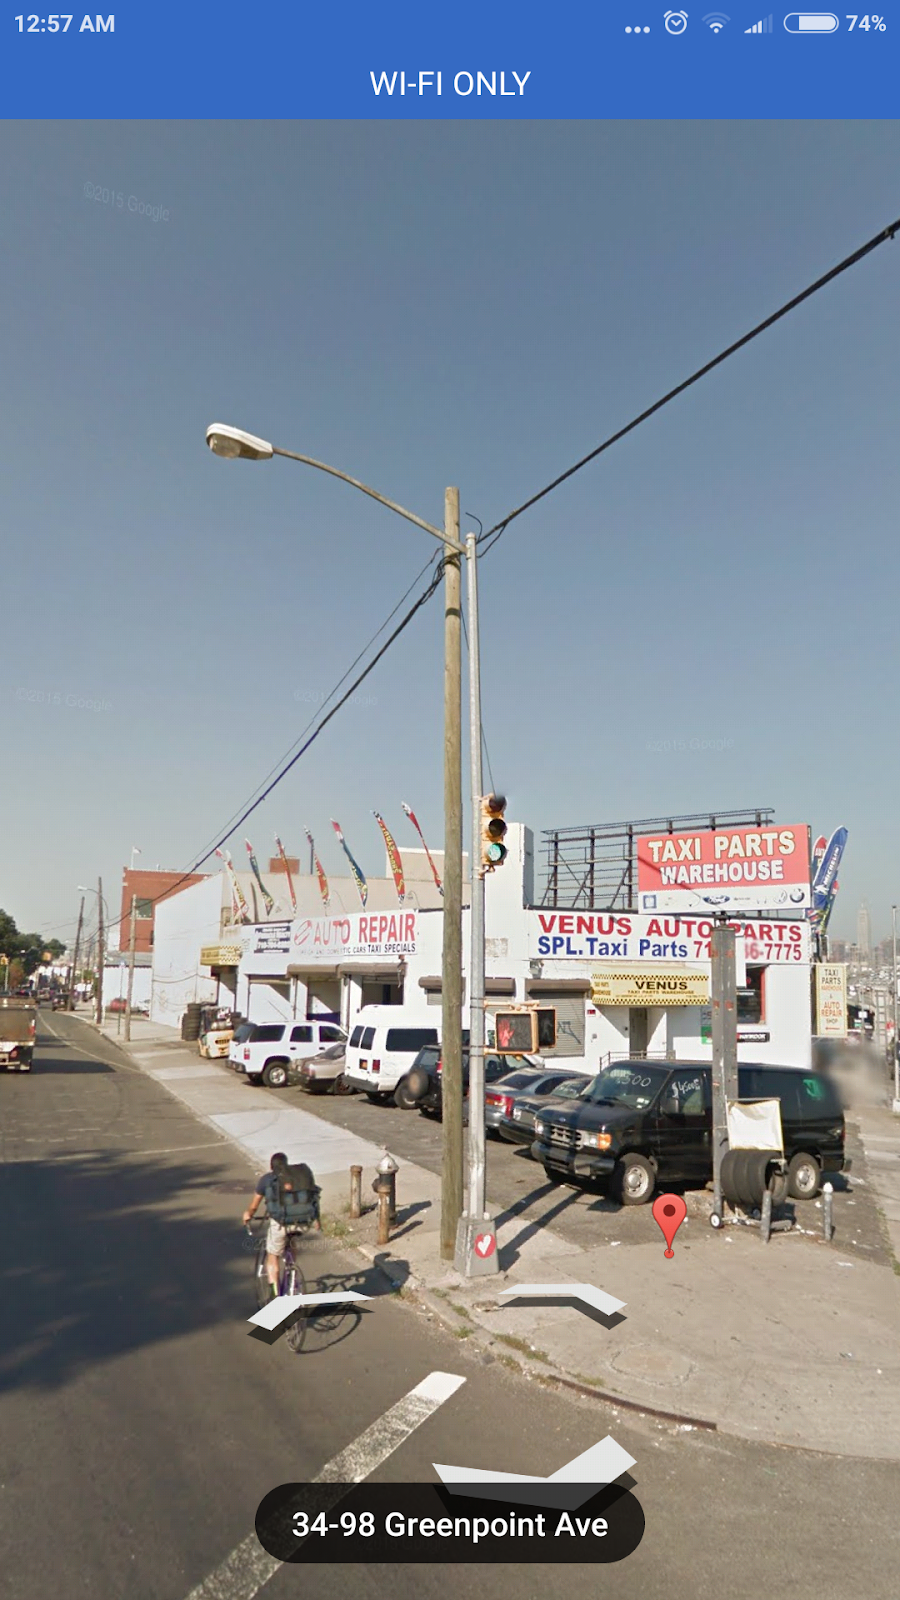 Automobile & Tyre repair shop - car repair  | Photo 2 of 2 | Address: 3421 Greenpoint Ave, Long Island City, NY 11101, USA | Phone: (347) 901-8490